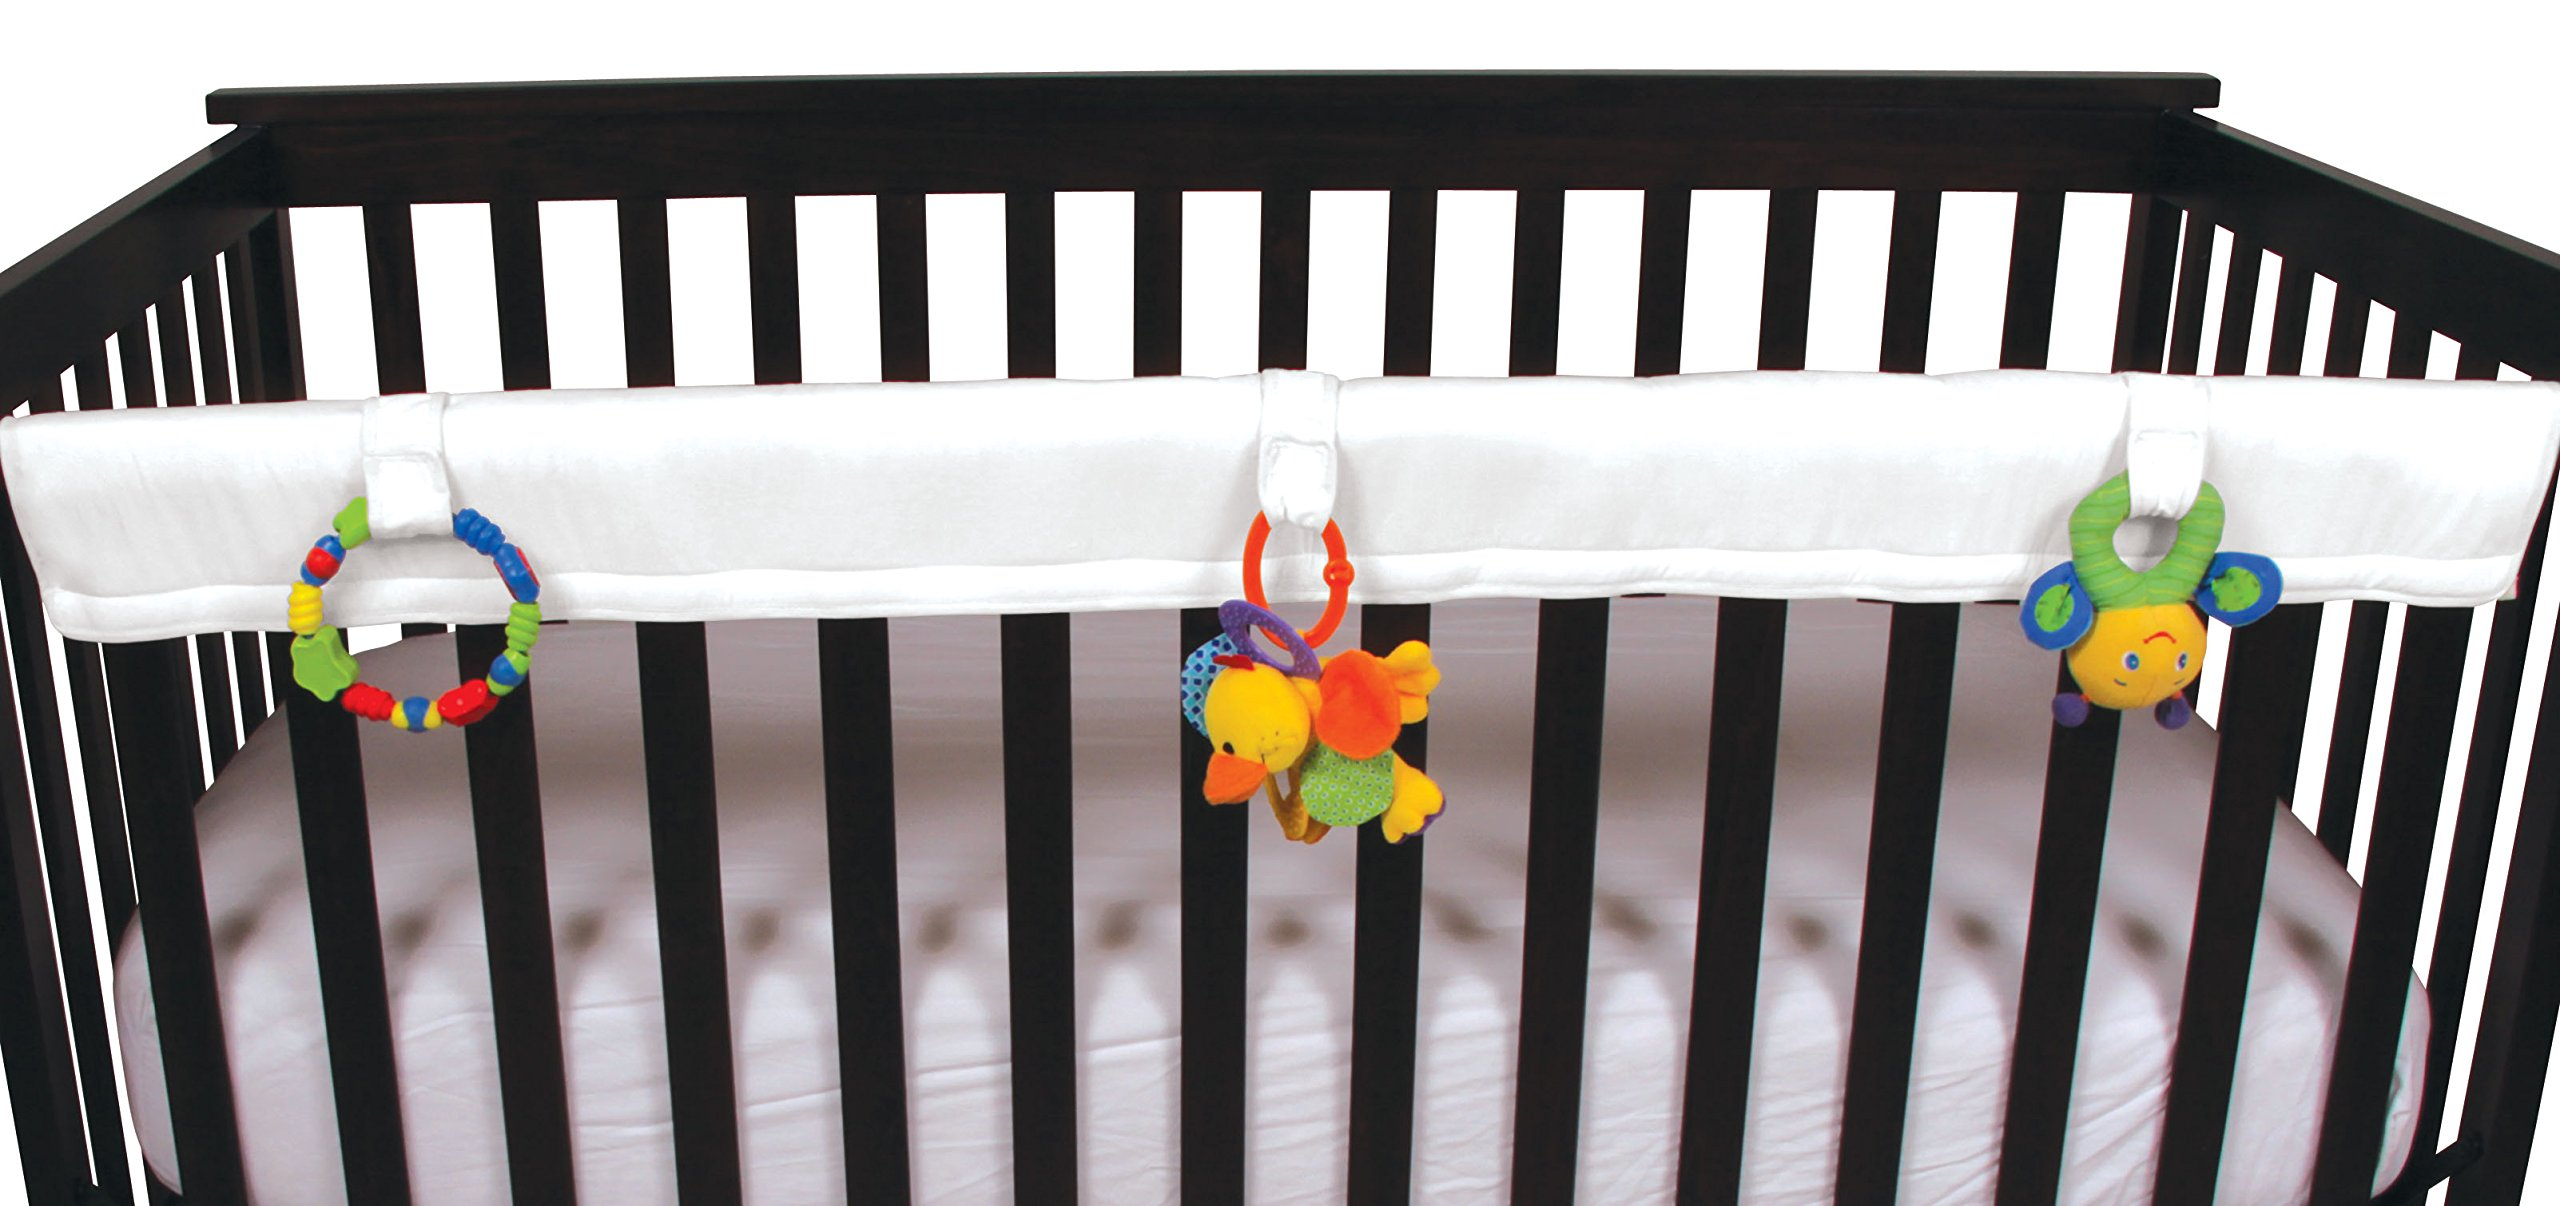 Leachco Easy Teether - Crib Rail Cover for cribs with THINNER railing (circumference of 7.5'' or less) - White